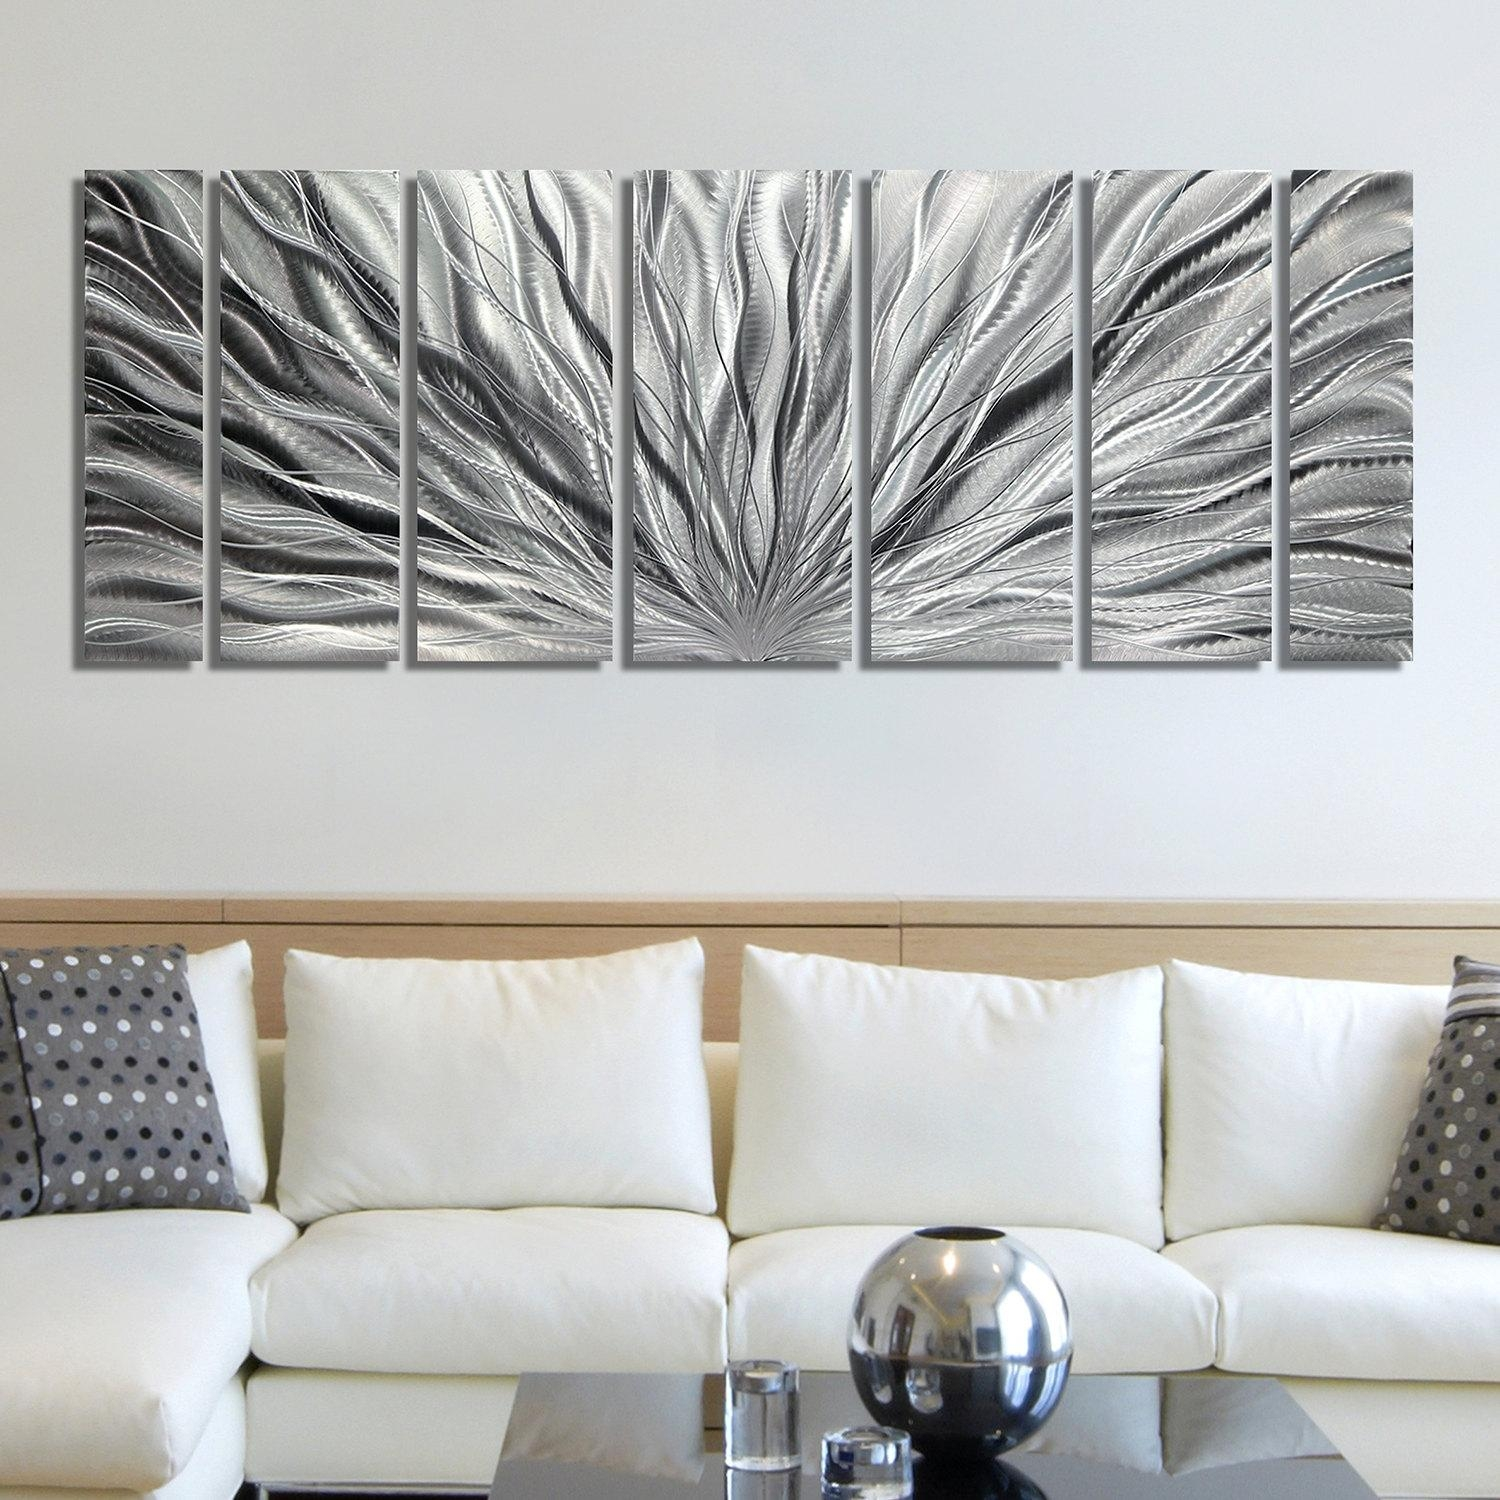 Sale Large Multi Panel Metal Wall Art In All Silver With Regard To Modern Wall Art For Sale (View 5 of 20)